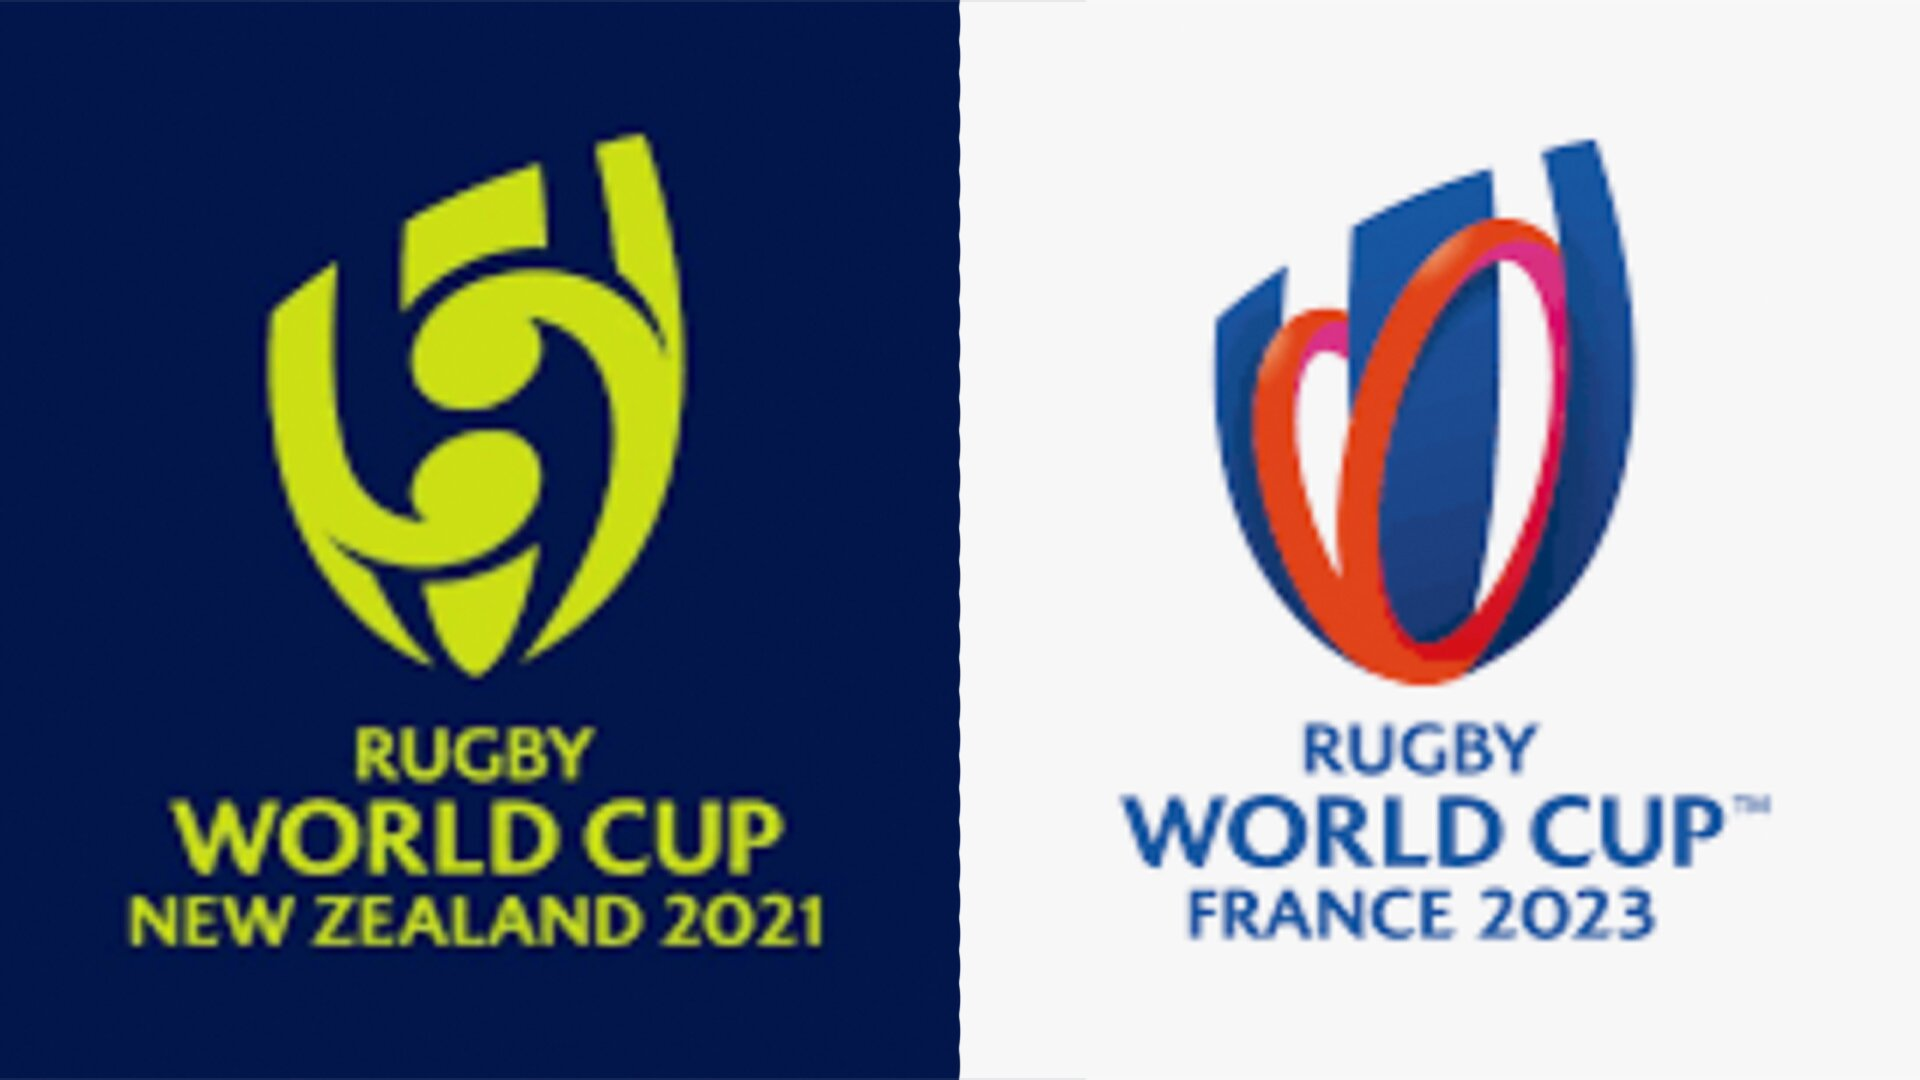 Fans left confused after 'gender-neutral' Rugby World Cup 2021 is announced